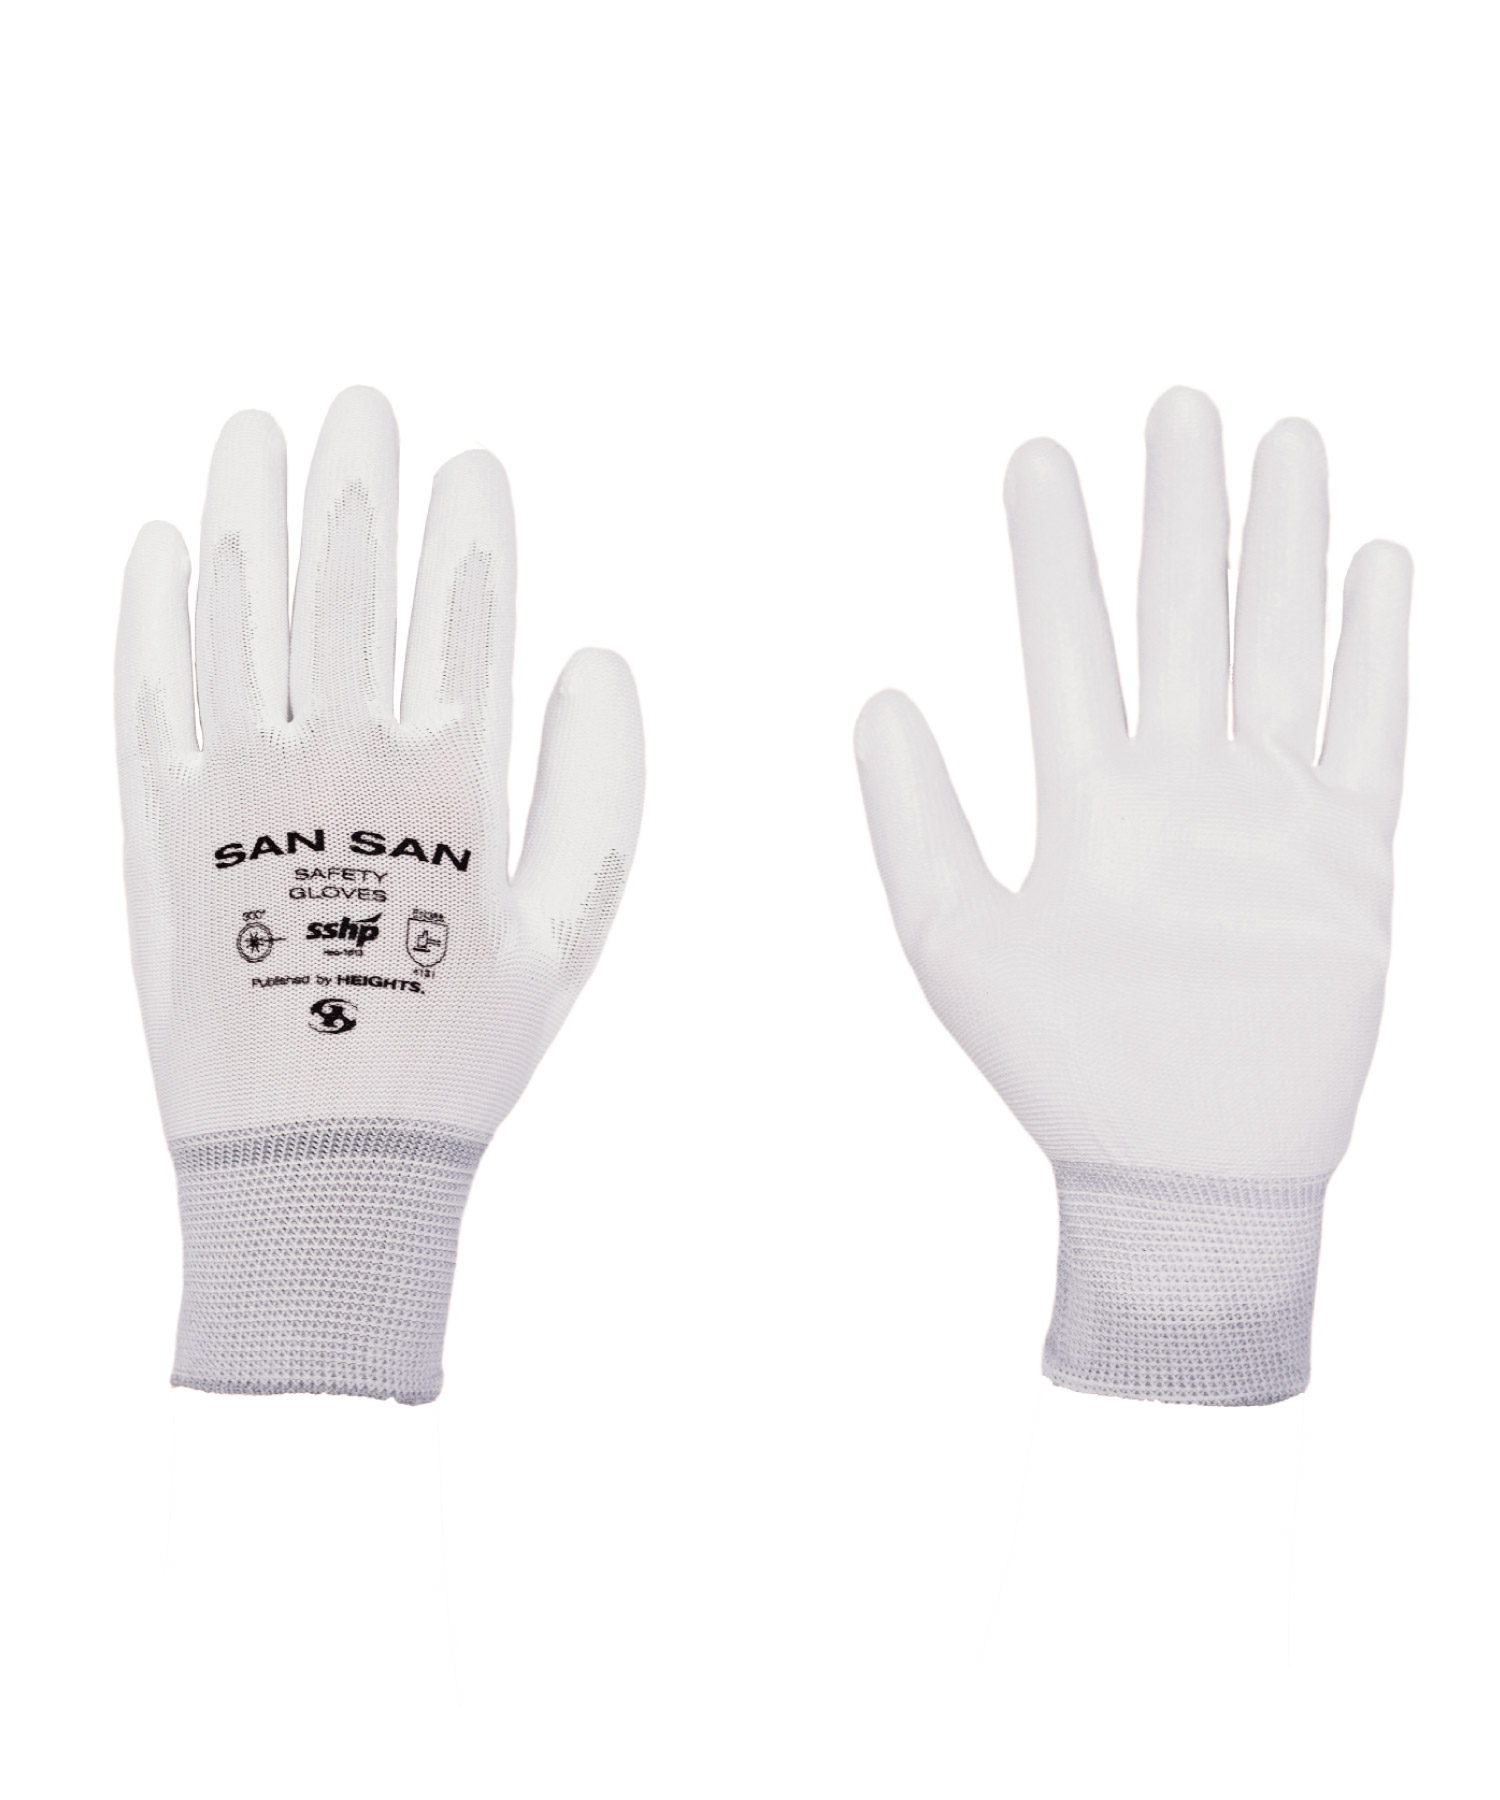 SAFETY GLOVES WHITE (2 SET IN 1 PACK)